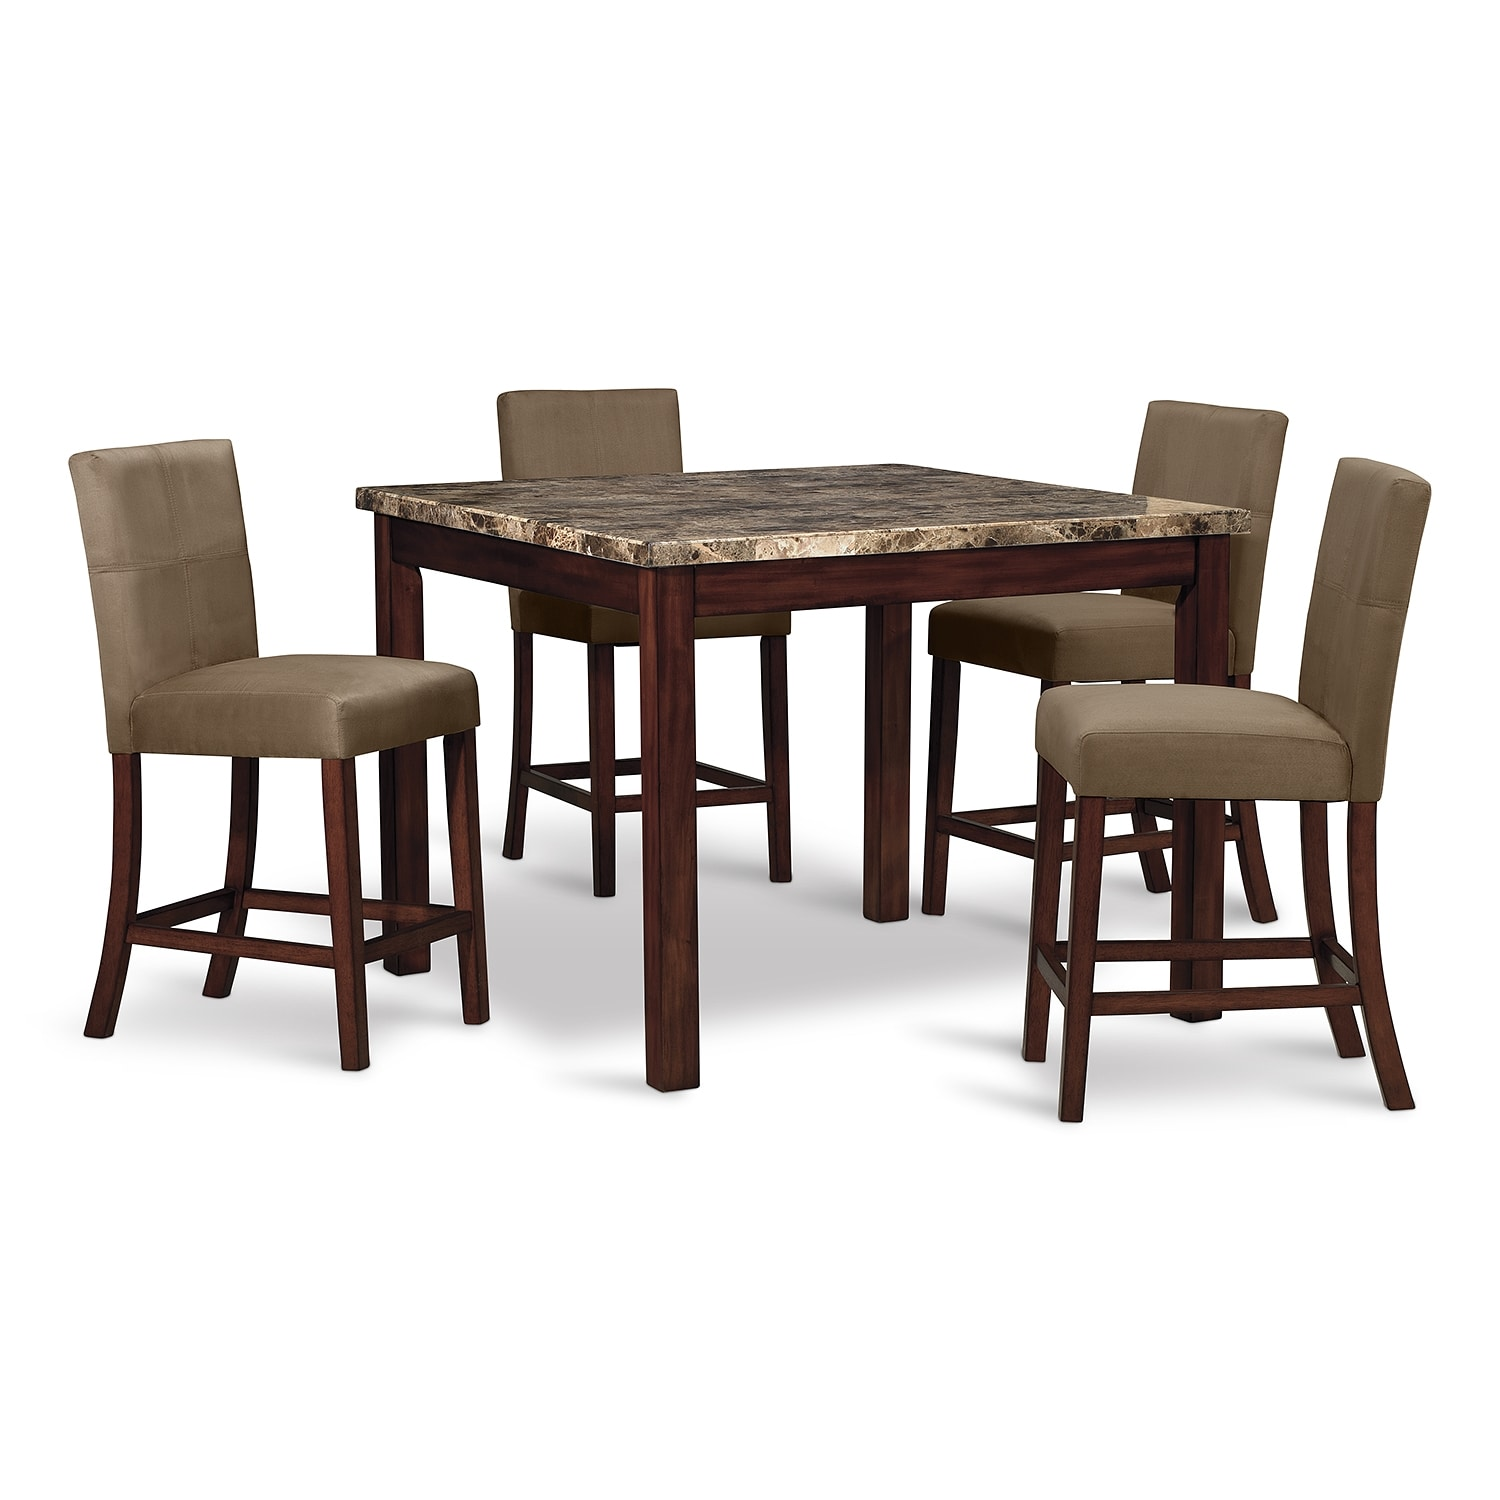 Cornerstone ii dining room 5 pc counter height dinette for Dining room furniture specials